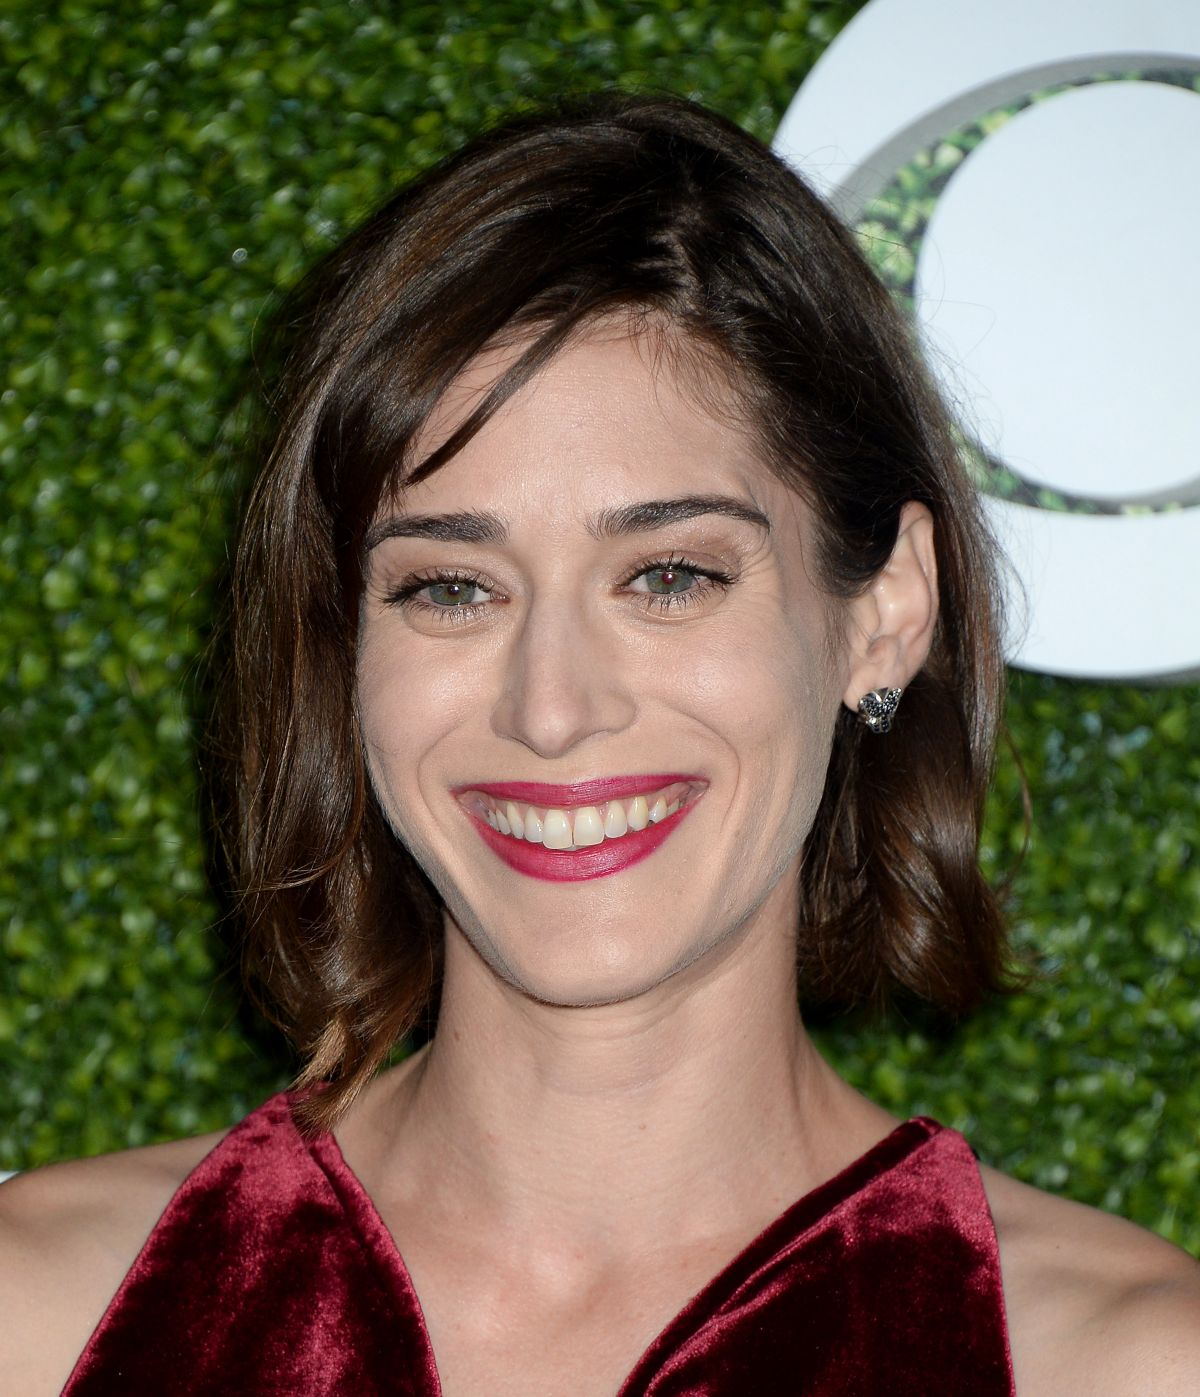 Lizzy caplan party down nude can